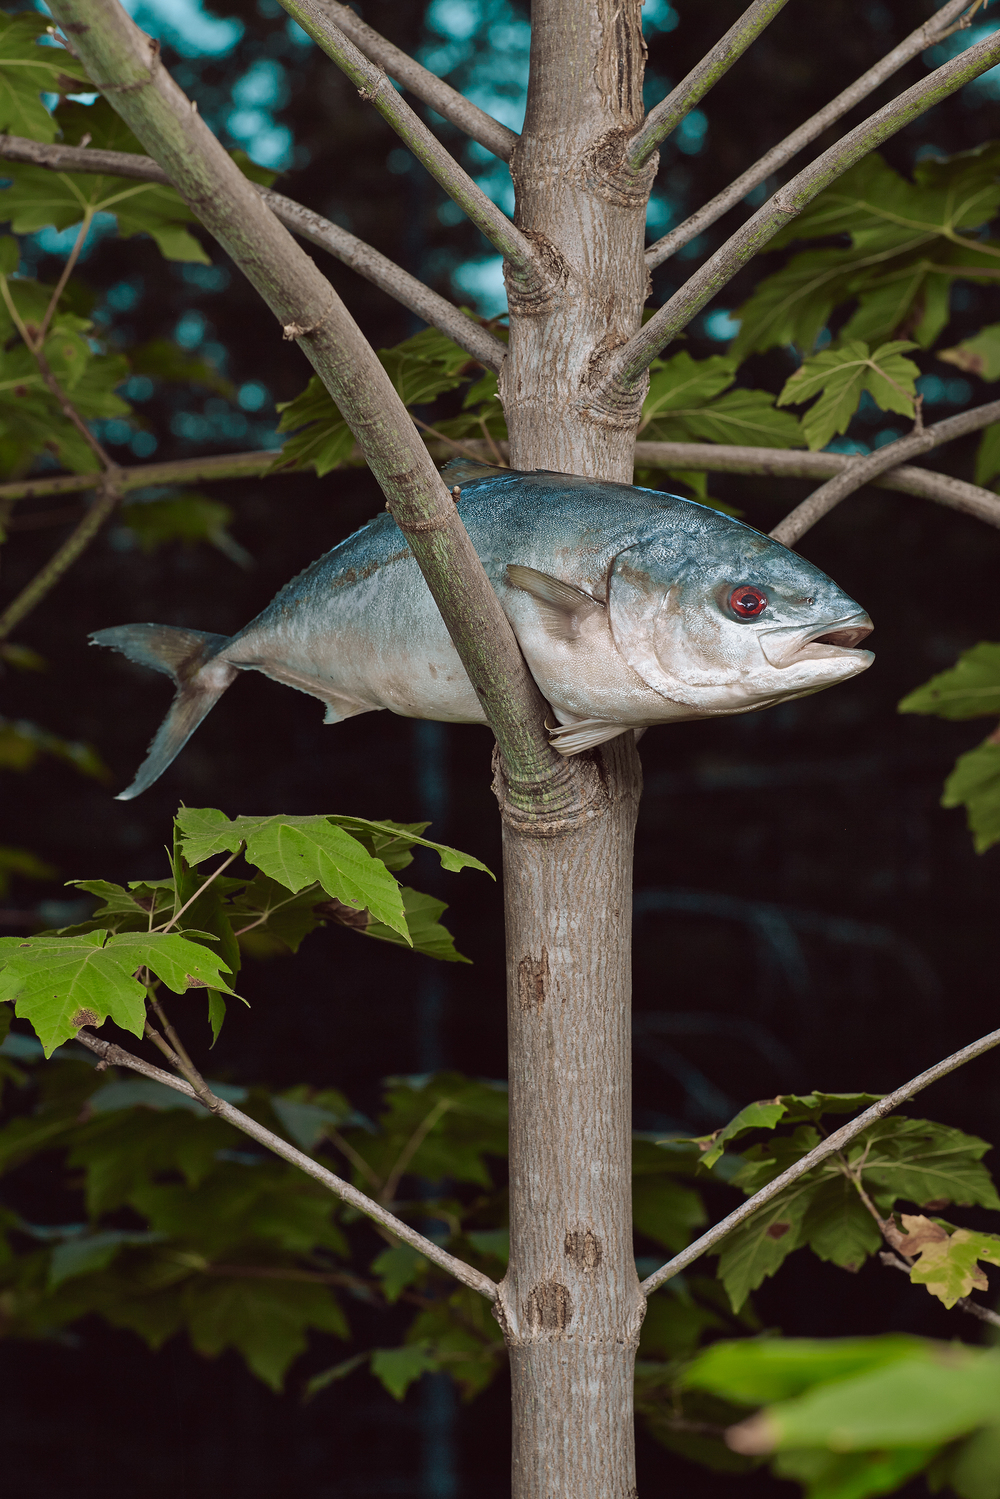 _fish in trees2522_cropped.jpg